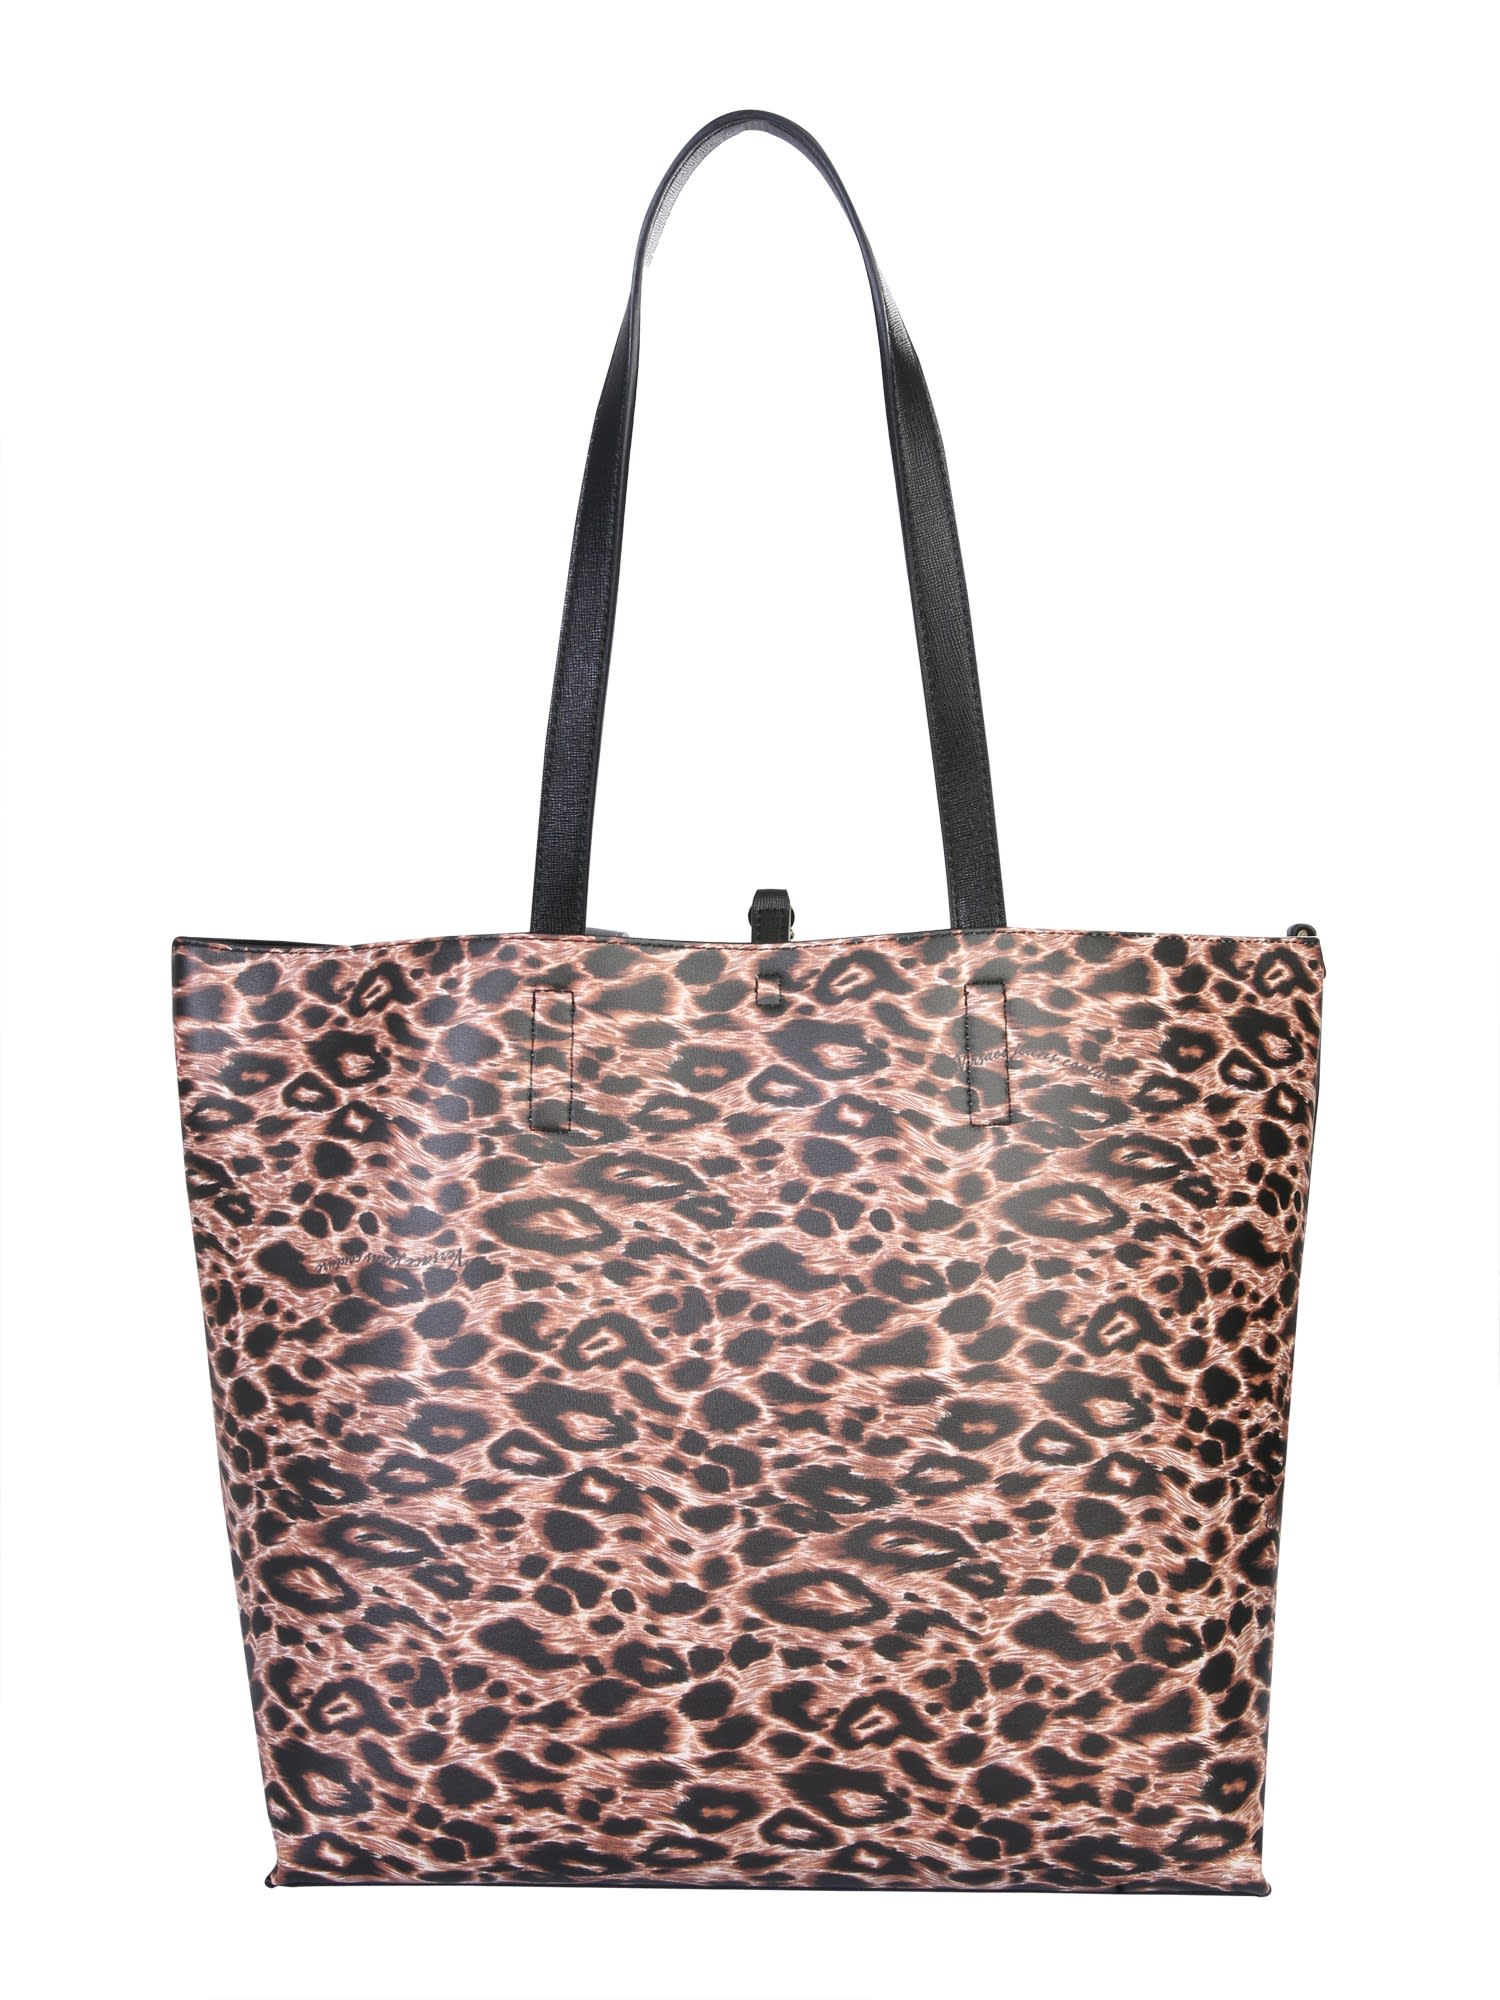 Versace Jeans Couture Reversible Tote Bag